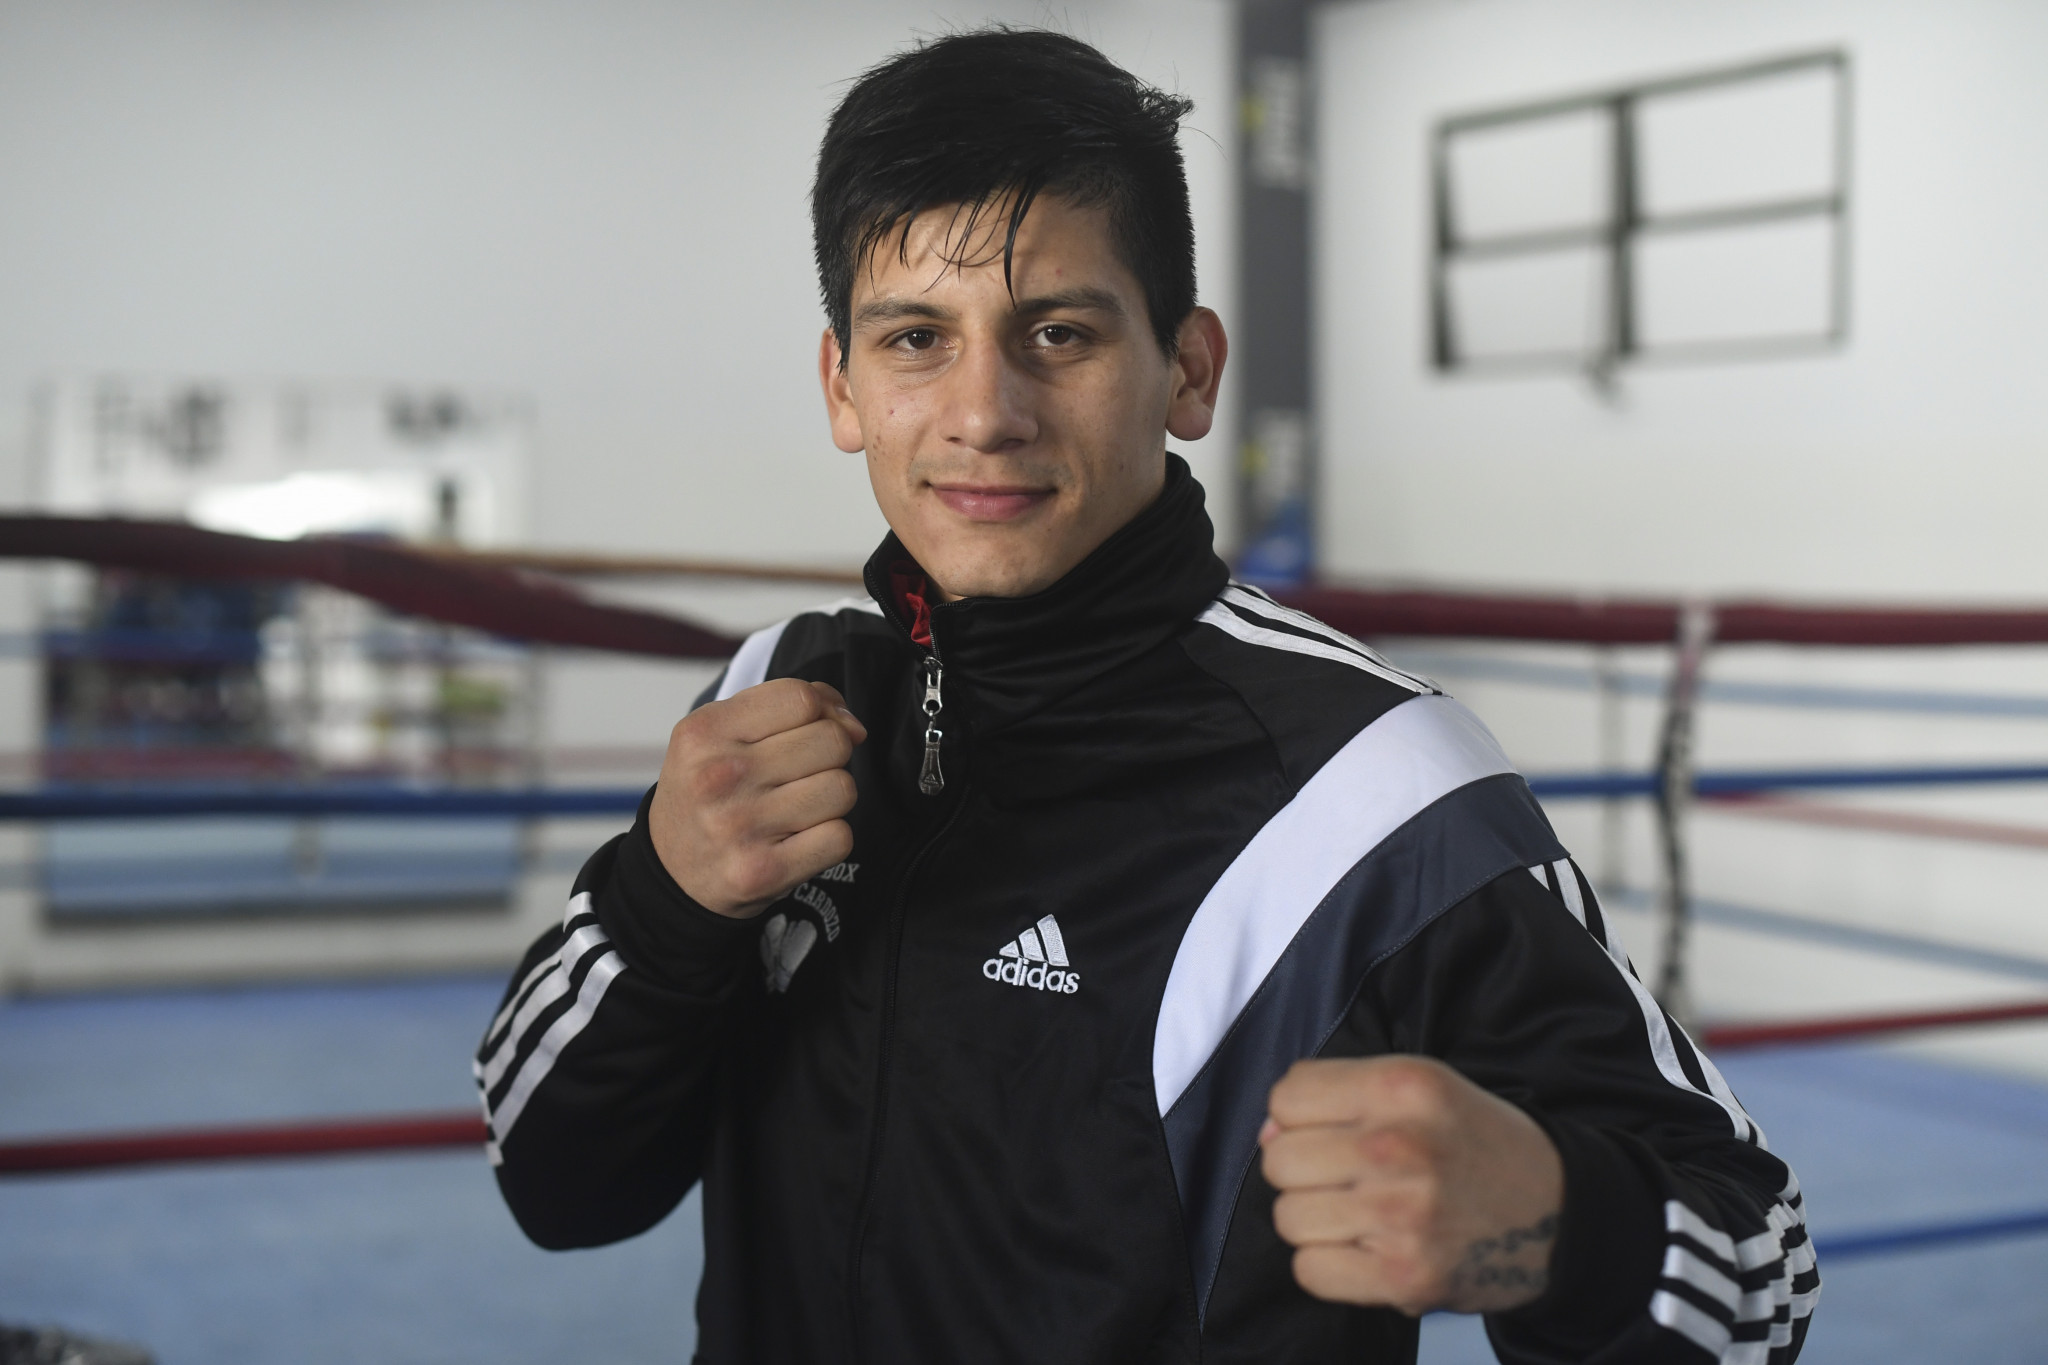 Youth Olympic champion Arregui victorious in first bout of AIBA Men's World Championships